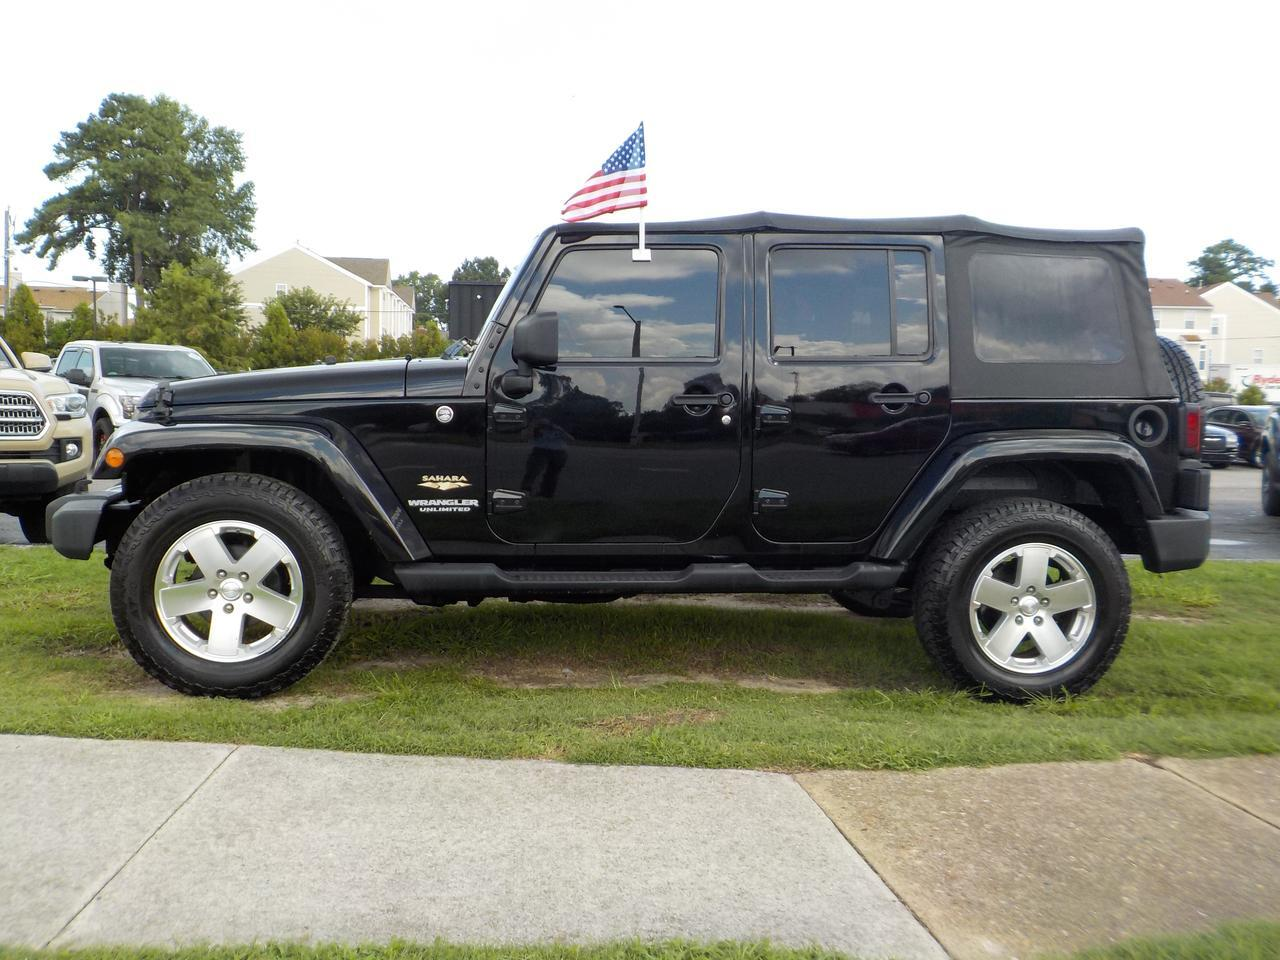 2008 JEEP WRANGLER UNLIMITED SAHARA, SPORT UTILITY, 4WD, PREMIUM ALLOY WHEELS!! Virginia Beach VA